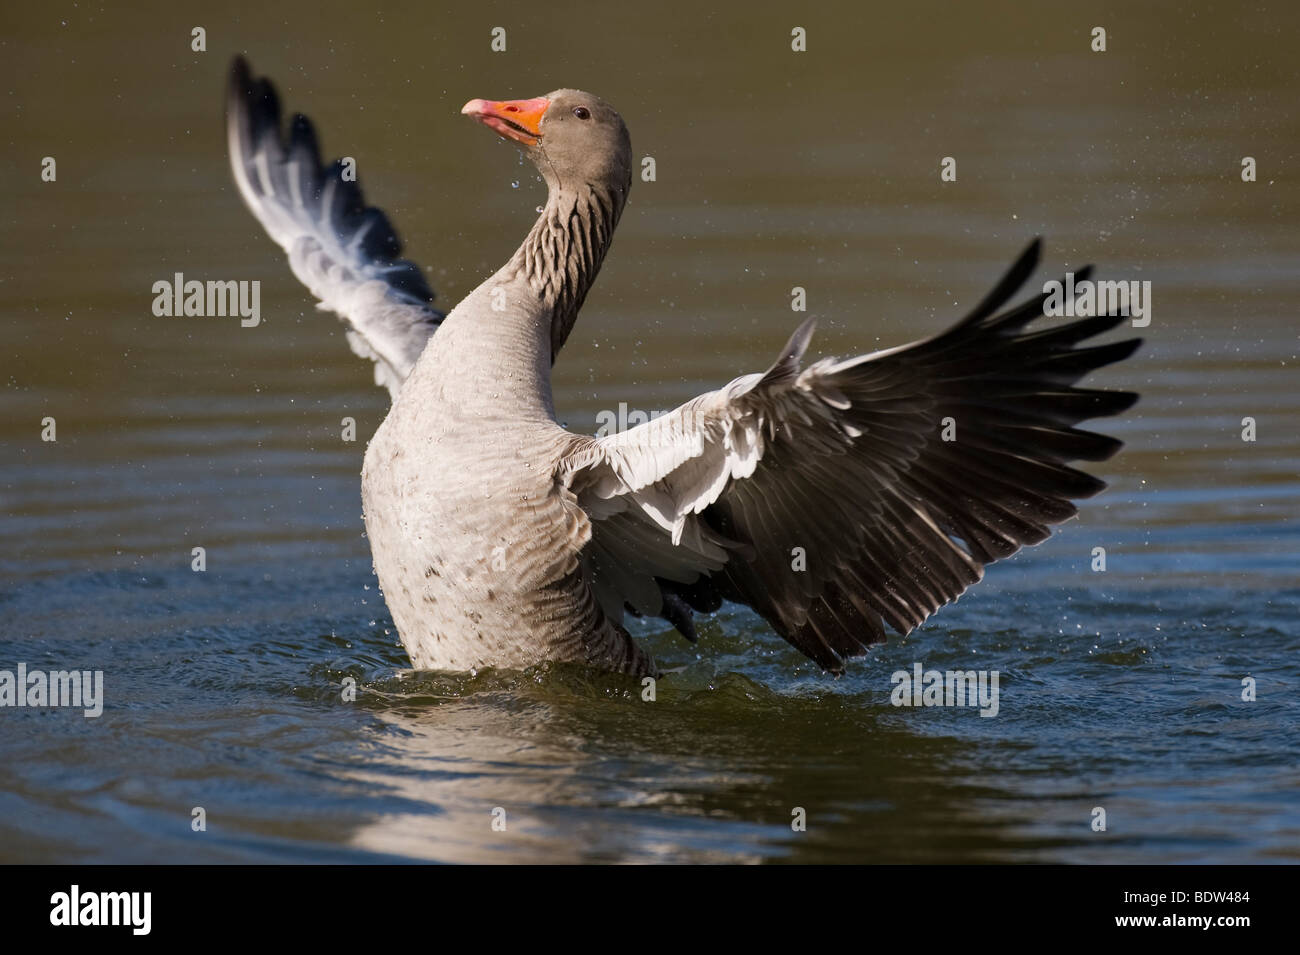 A greylag goose courting a potential partner - Stock Image